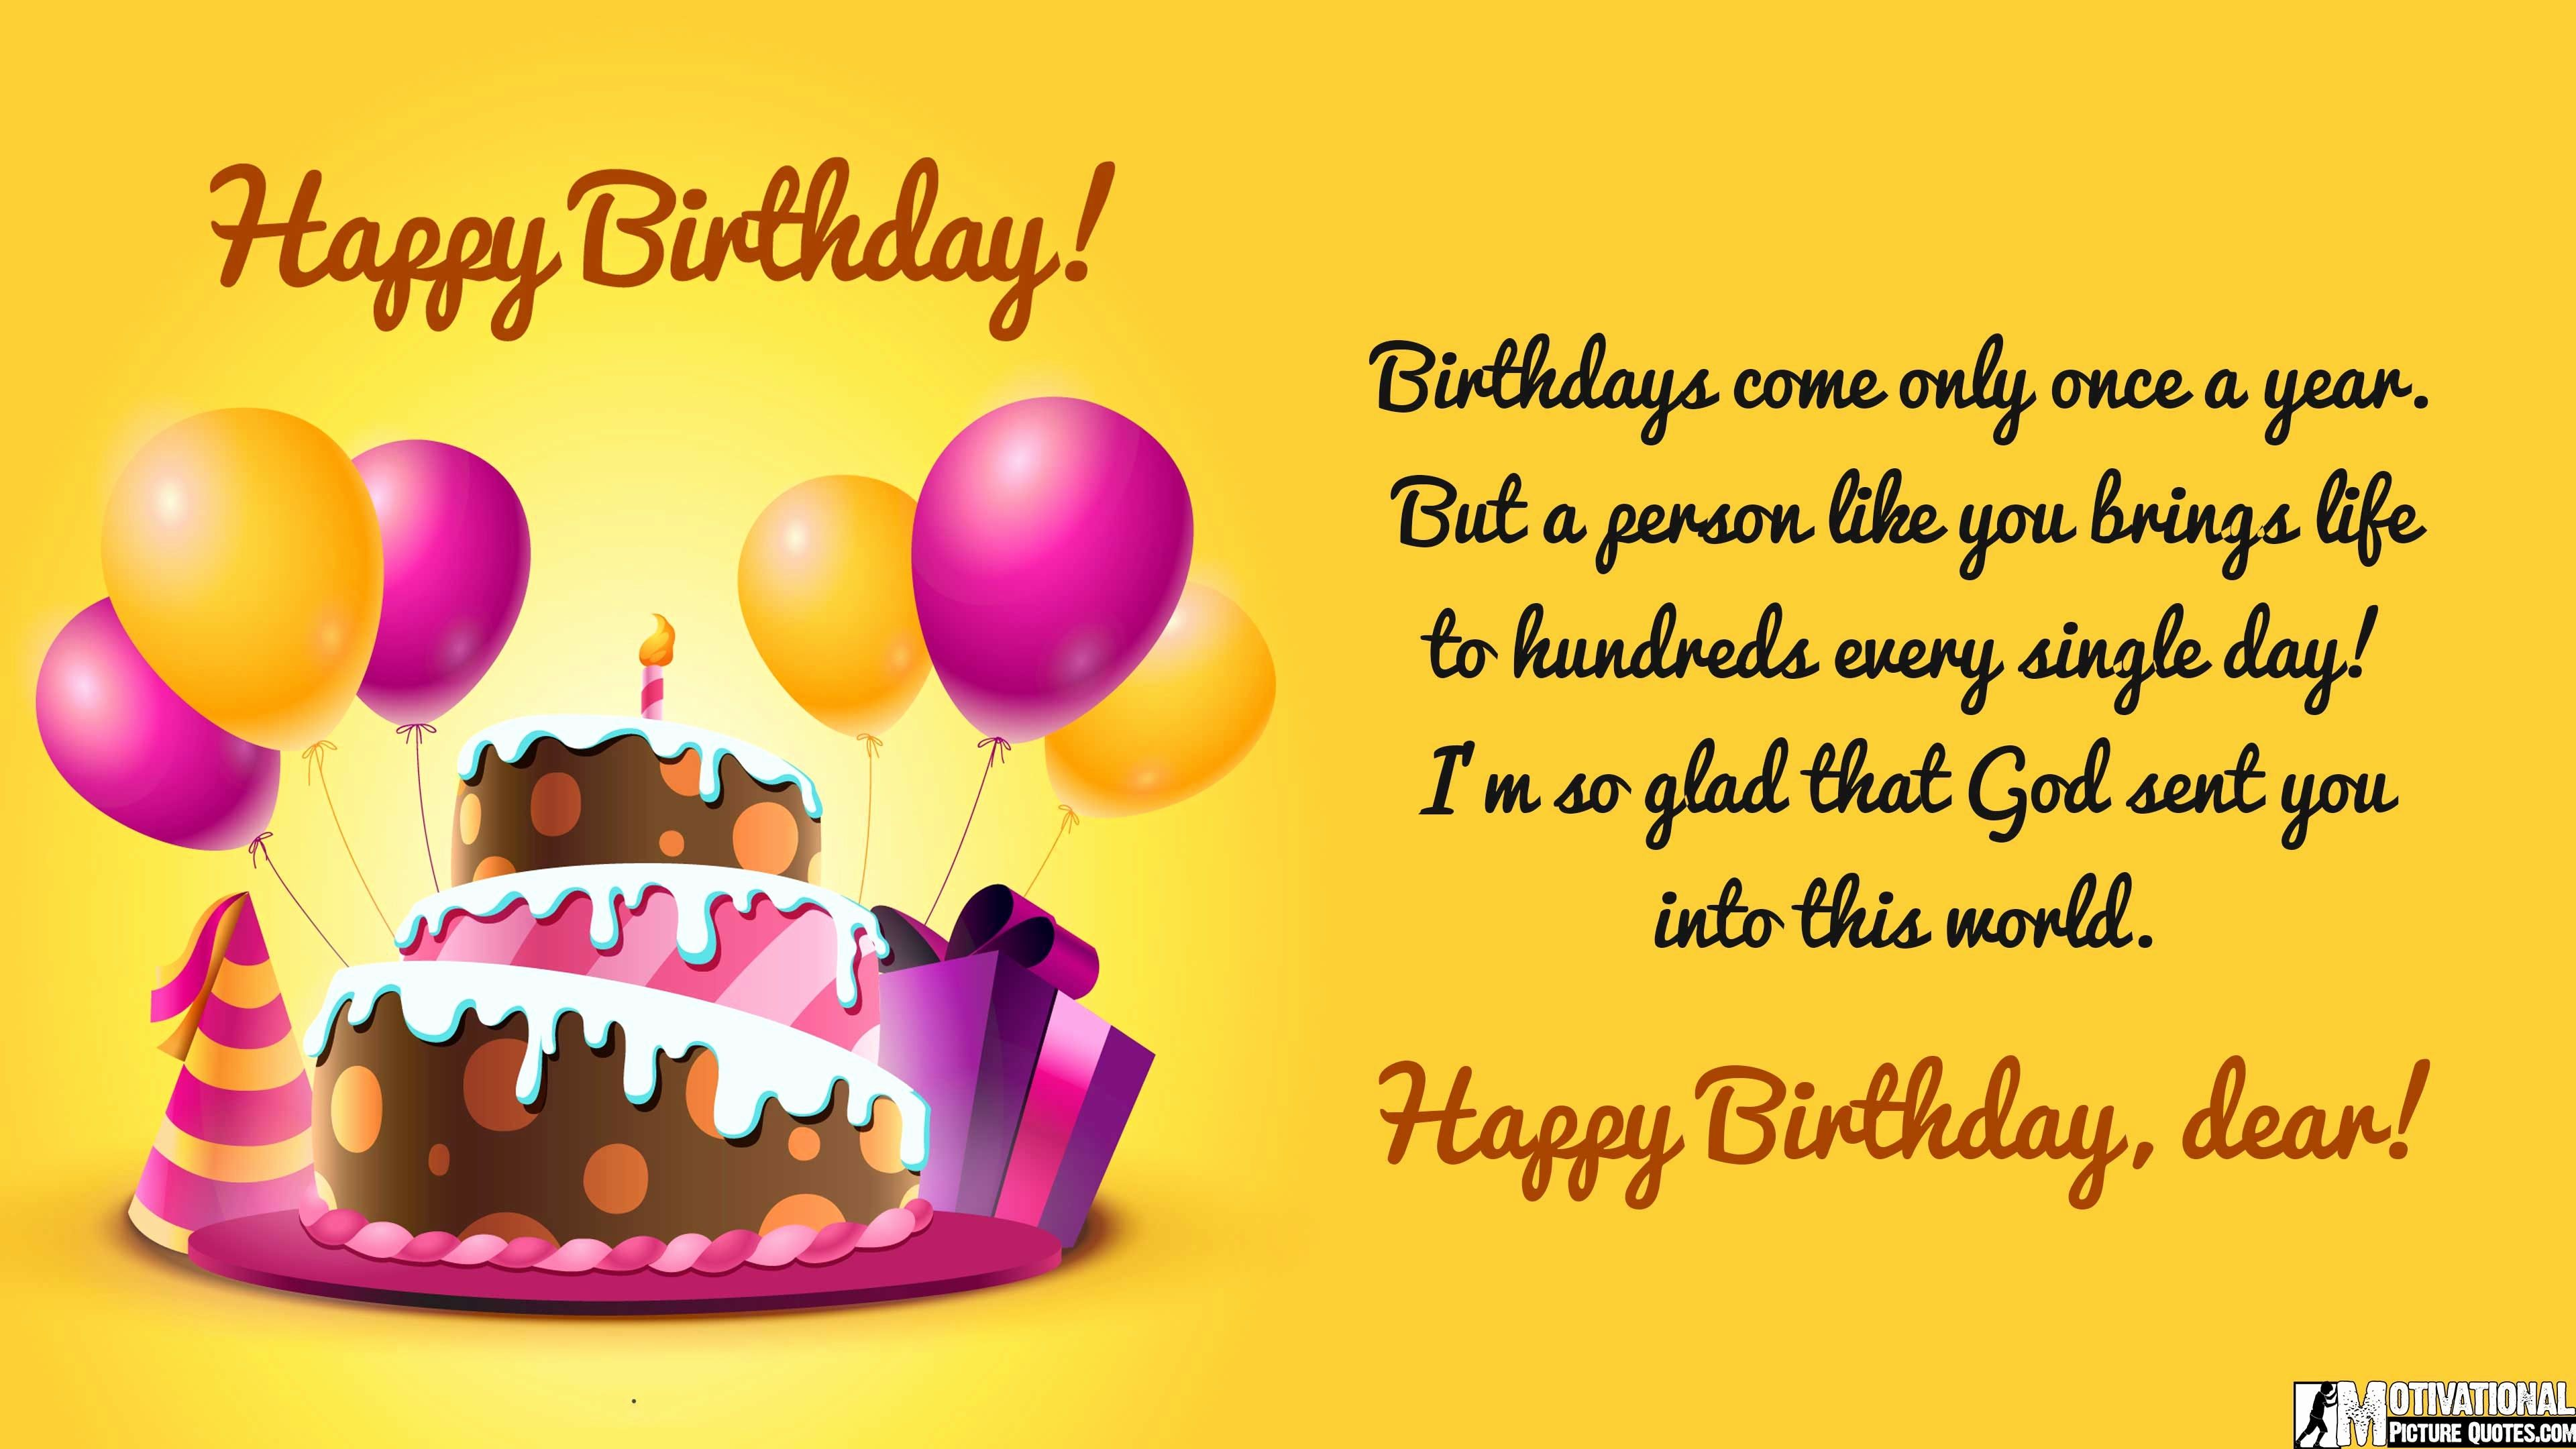 Happy Birthday Wishes Quotes Stunning Happy Birthday Wishes For Student  Happy Birthday Students And . Inspiration